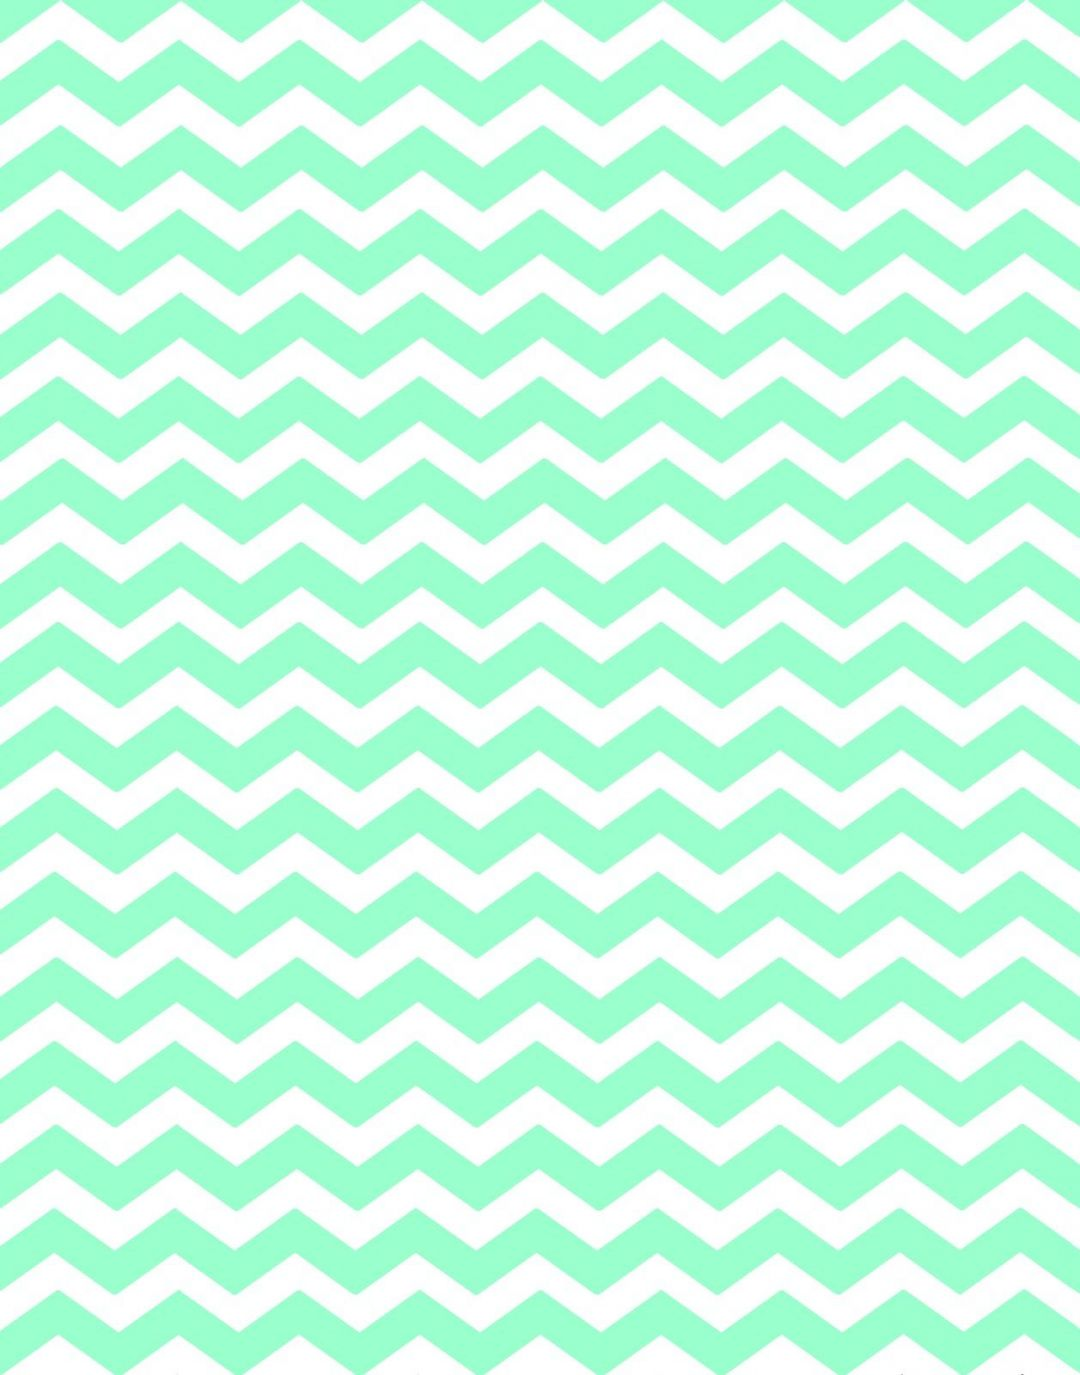 Mint Green Aesthetic HD Wallpapers (Desktop Background / Android / iPhone) (1080p, 4k) (35120) - 3D / Abstract